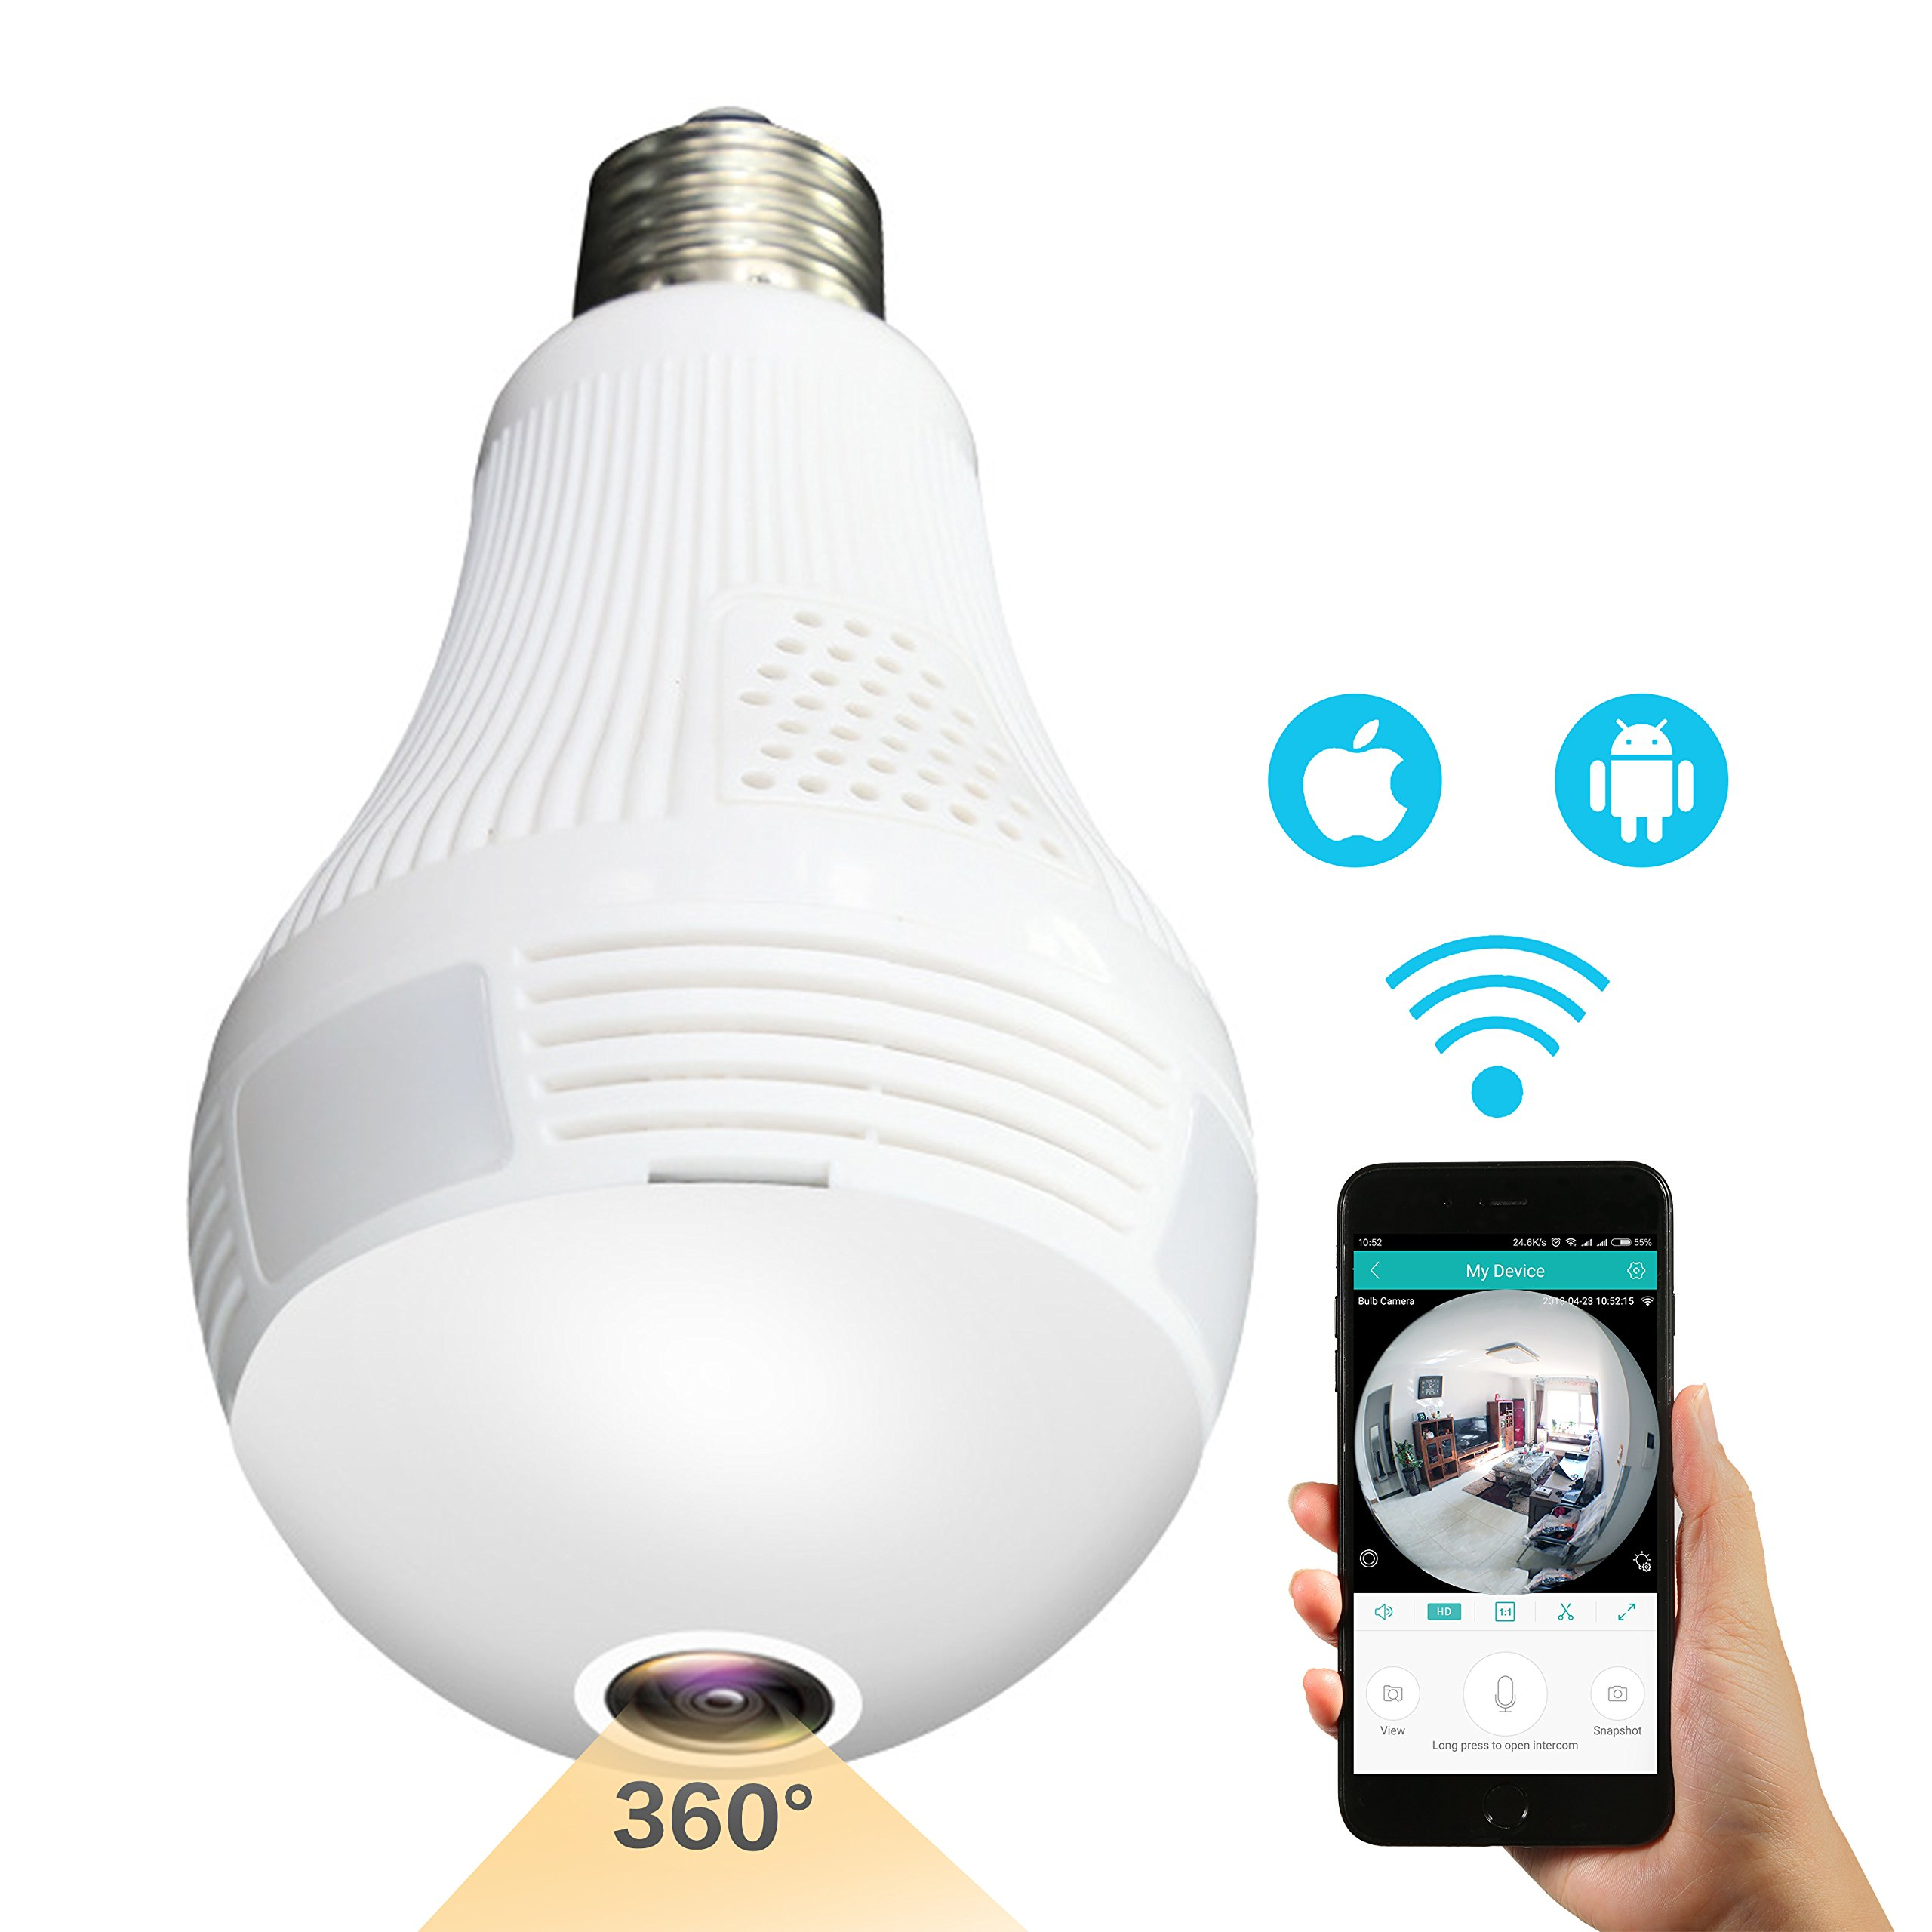 Sheenwang Wireless Security Camera Bulb, LED Light Bulb Camera Panoramic IP Camera with 360 Degree Fisheye Lens & Timing Function- Home Security System for iOS/Android APP Remote Control